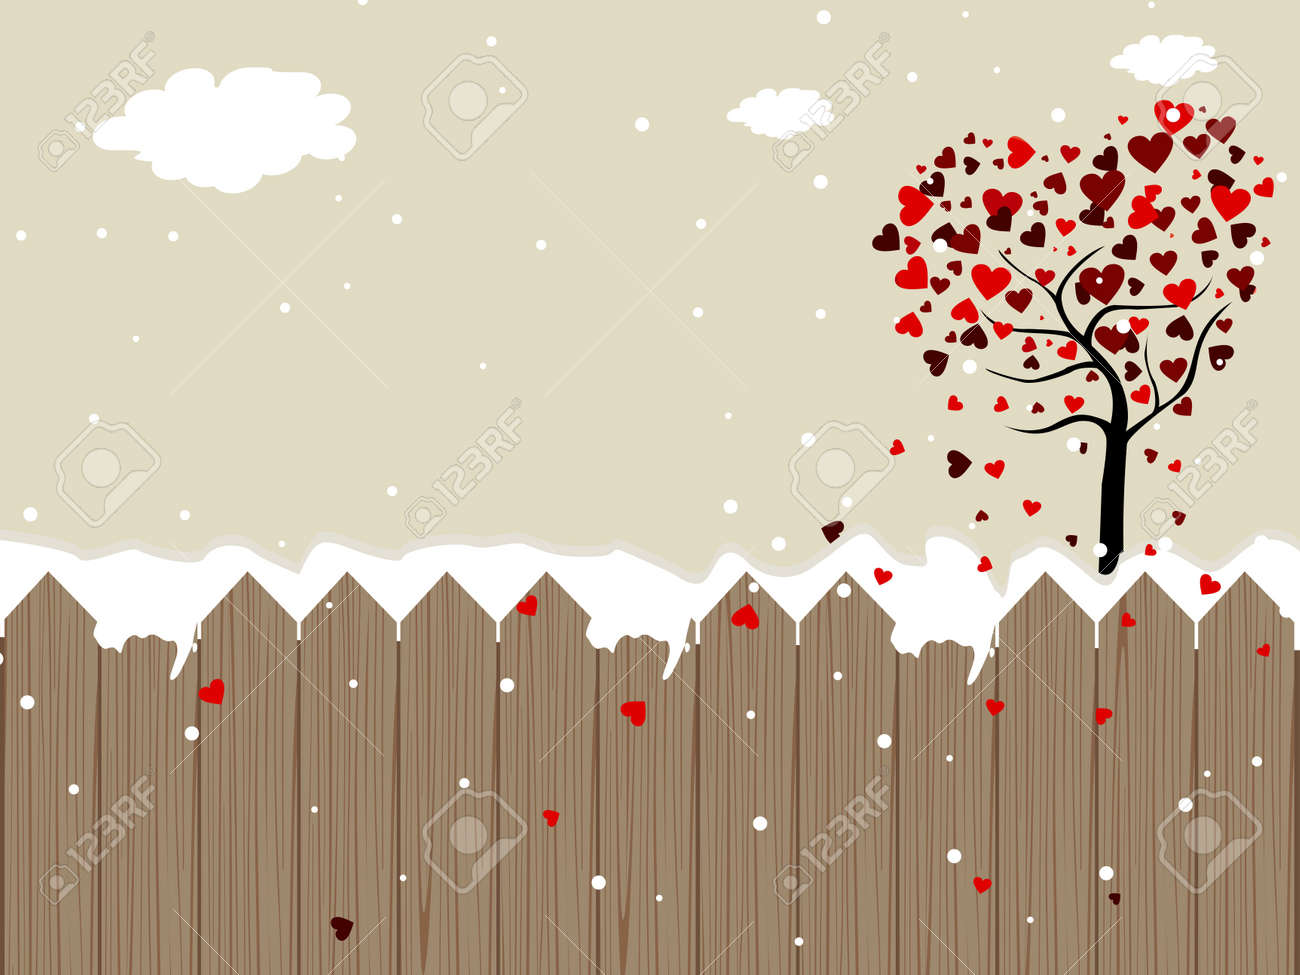 Romantic landscape background heaving valentine tree, snowflakes, clouds for Valentine Day Stock Vector - 11988470